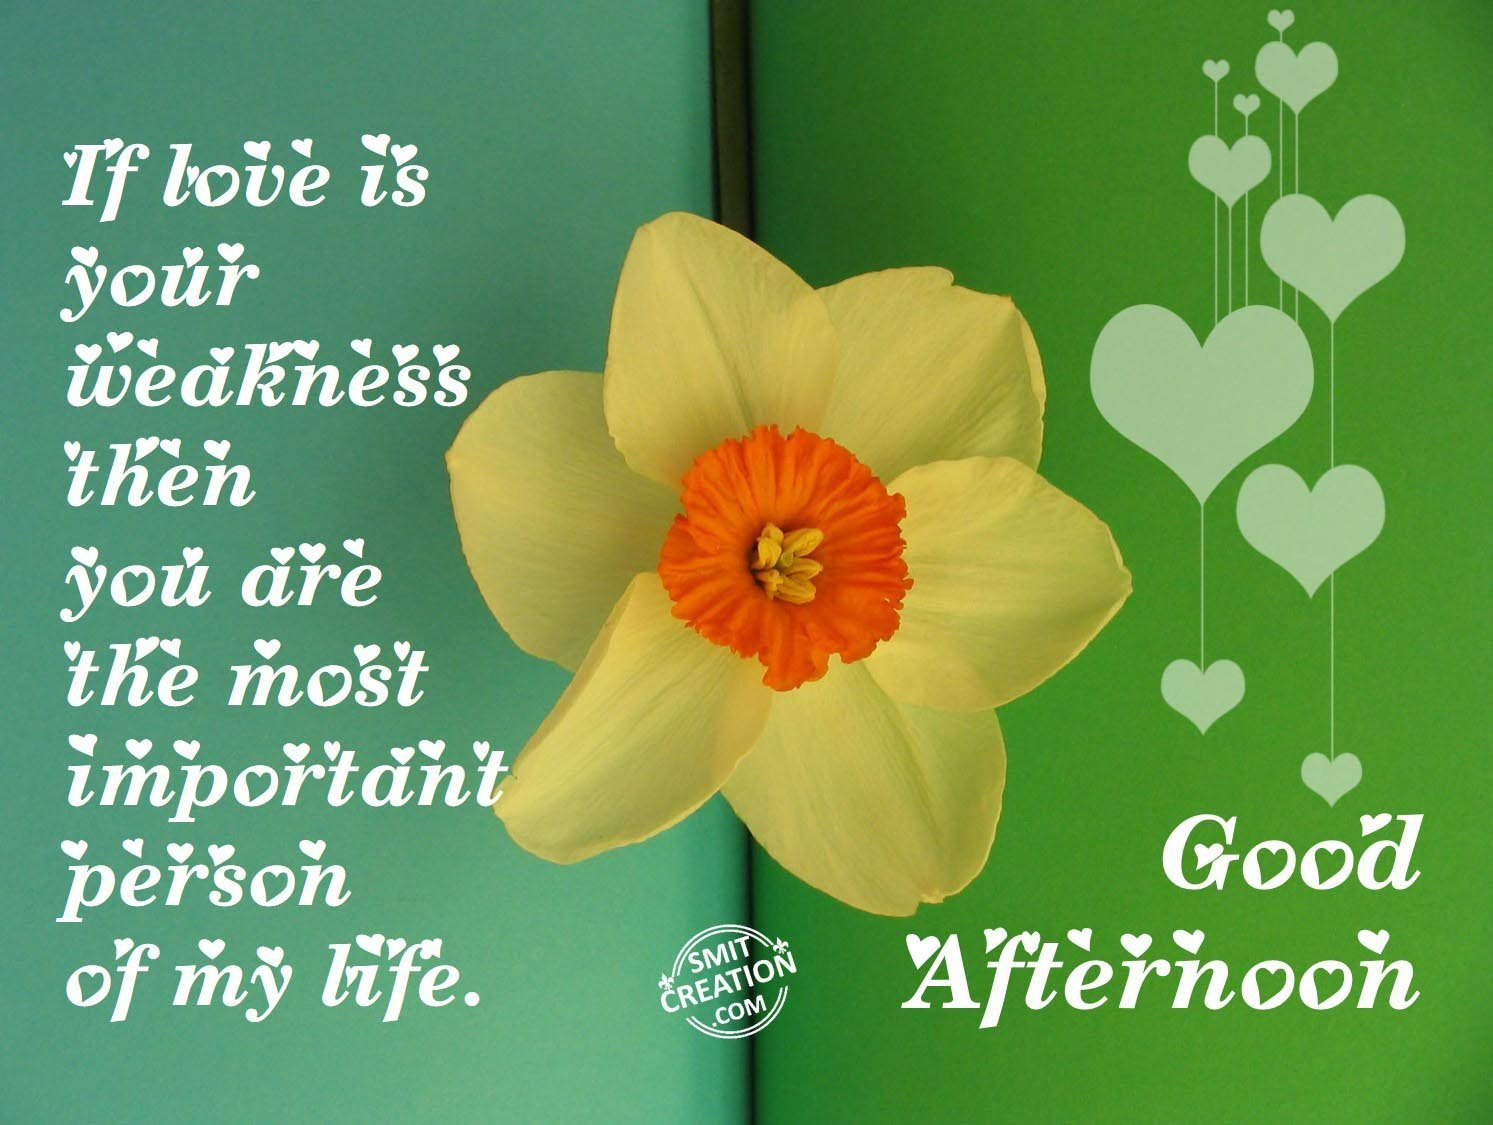 Good Afternoon Message Pictures And Graphics Smitcreation